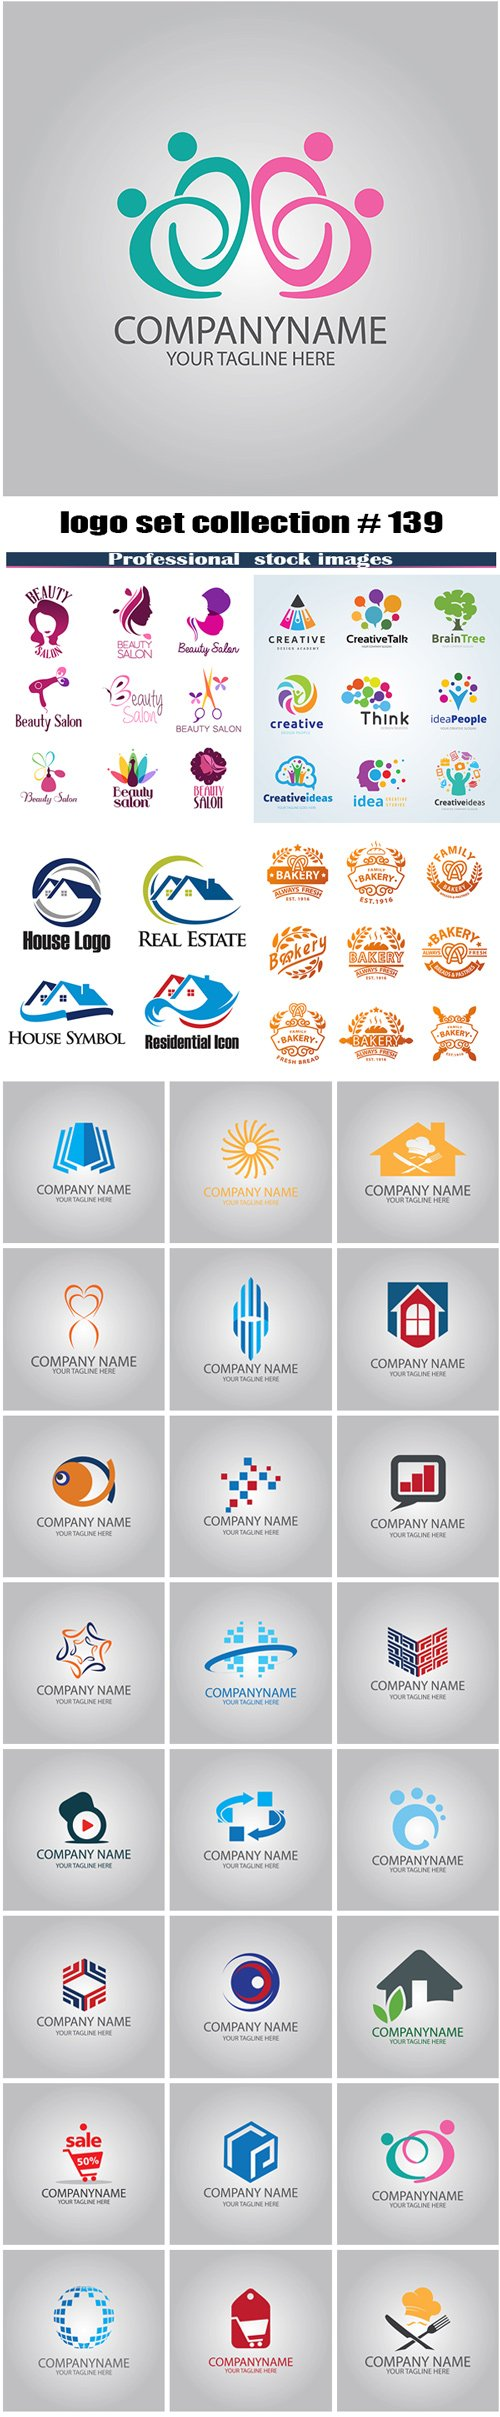 logo set collection # 139